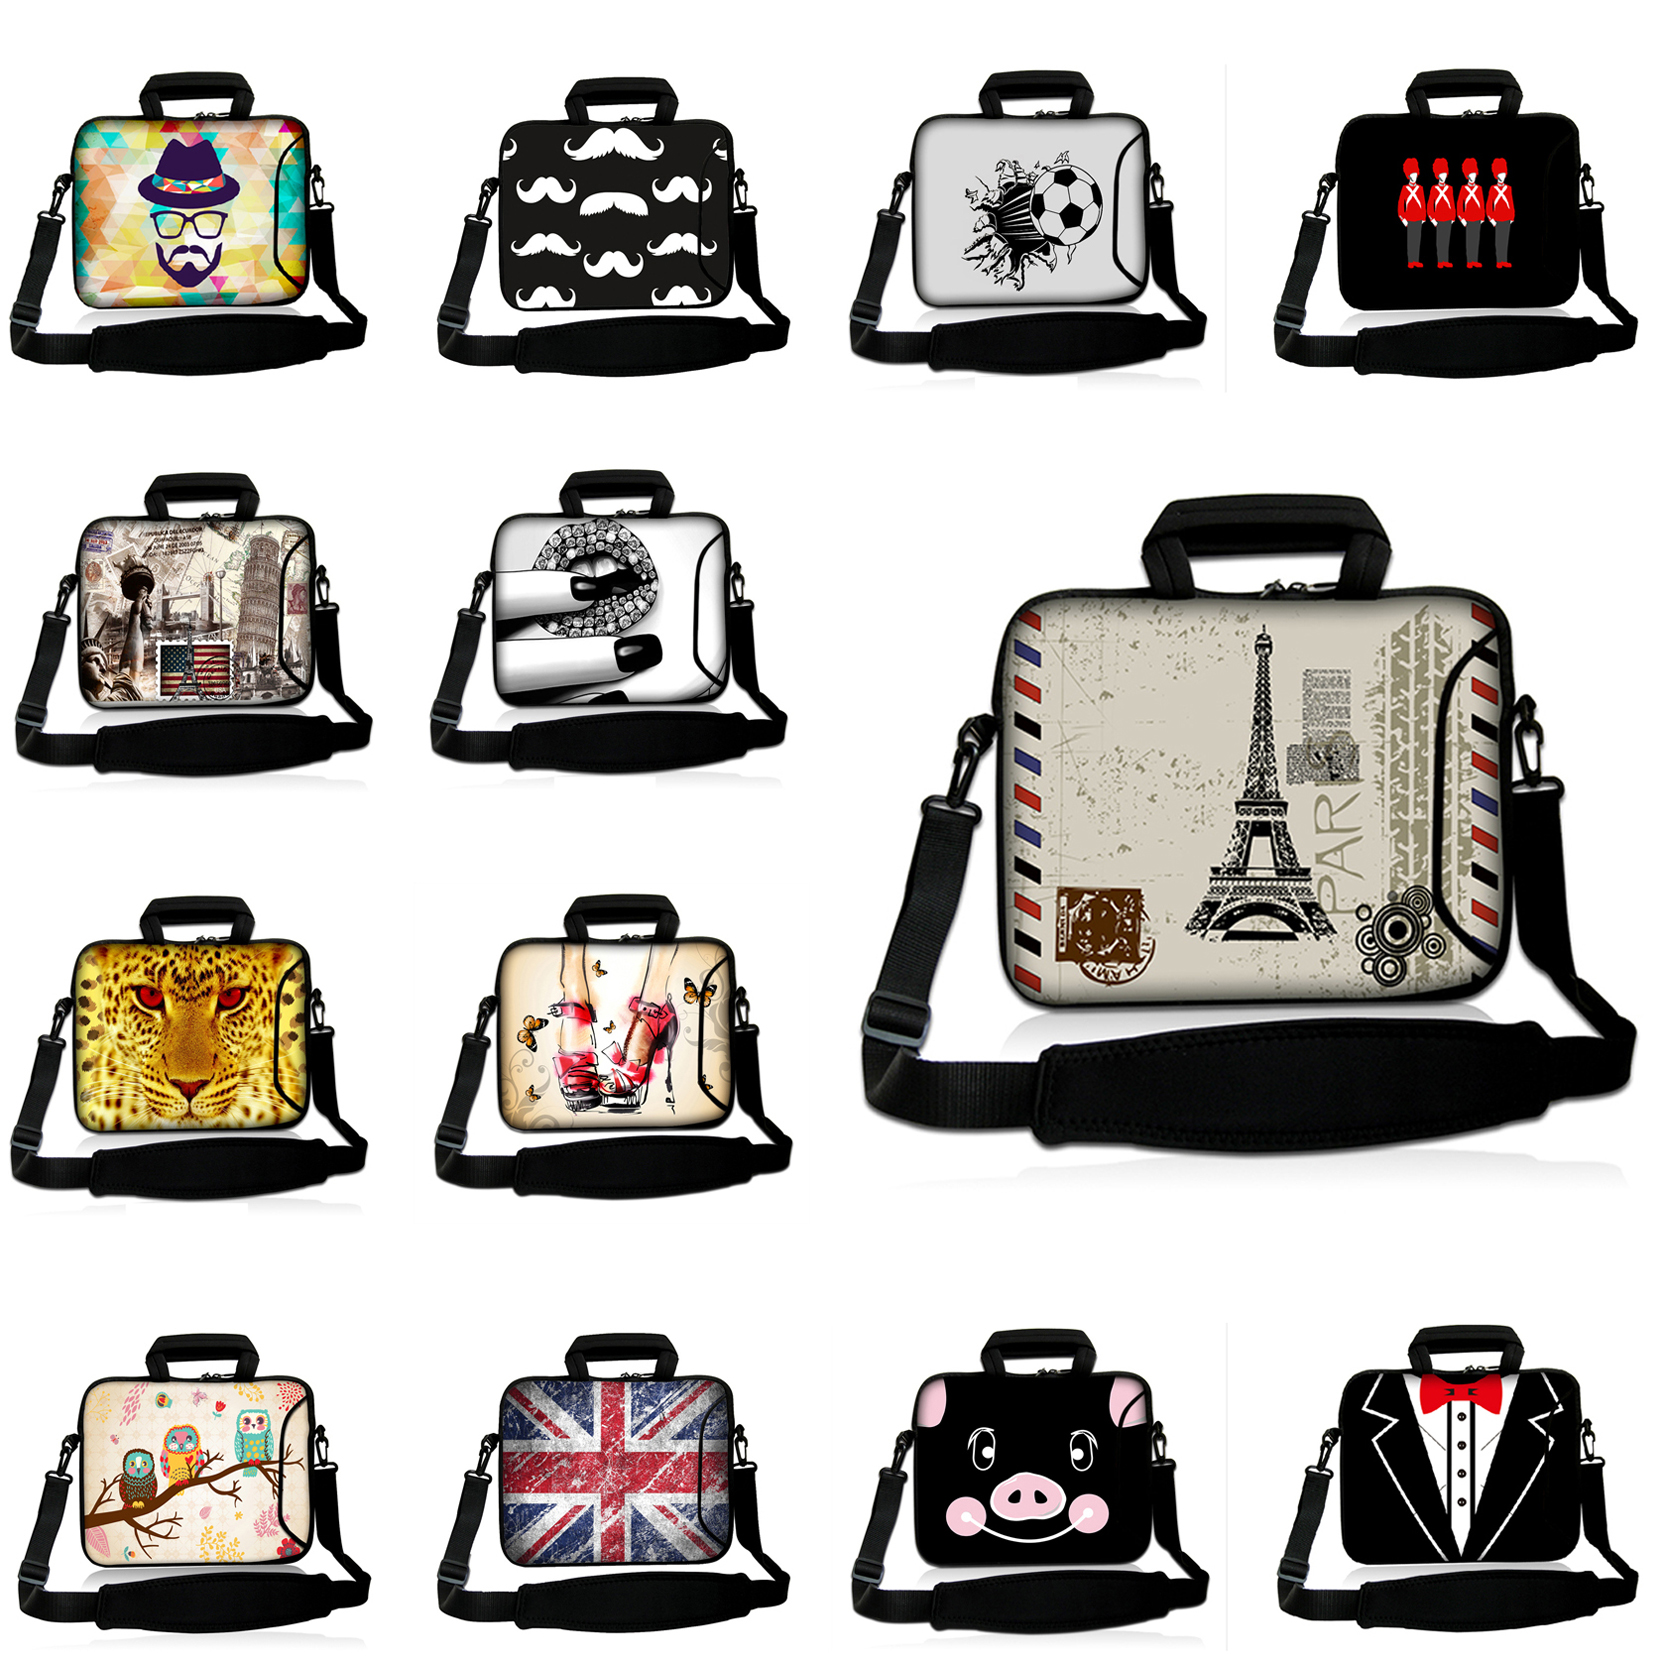 Newest Shoulder Cases 17.3/16.8 Inch Computer Bags For HP Asus Series Laptop 17 Inch Case Unisex Messenger Laptop Bag 17.4 Inch